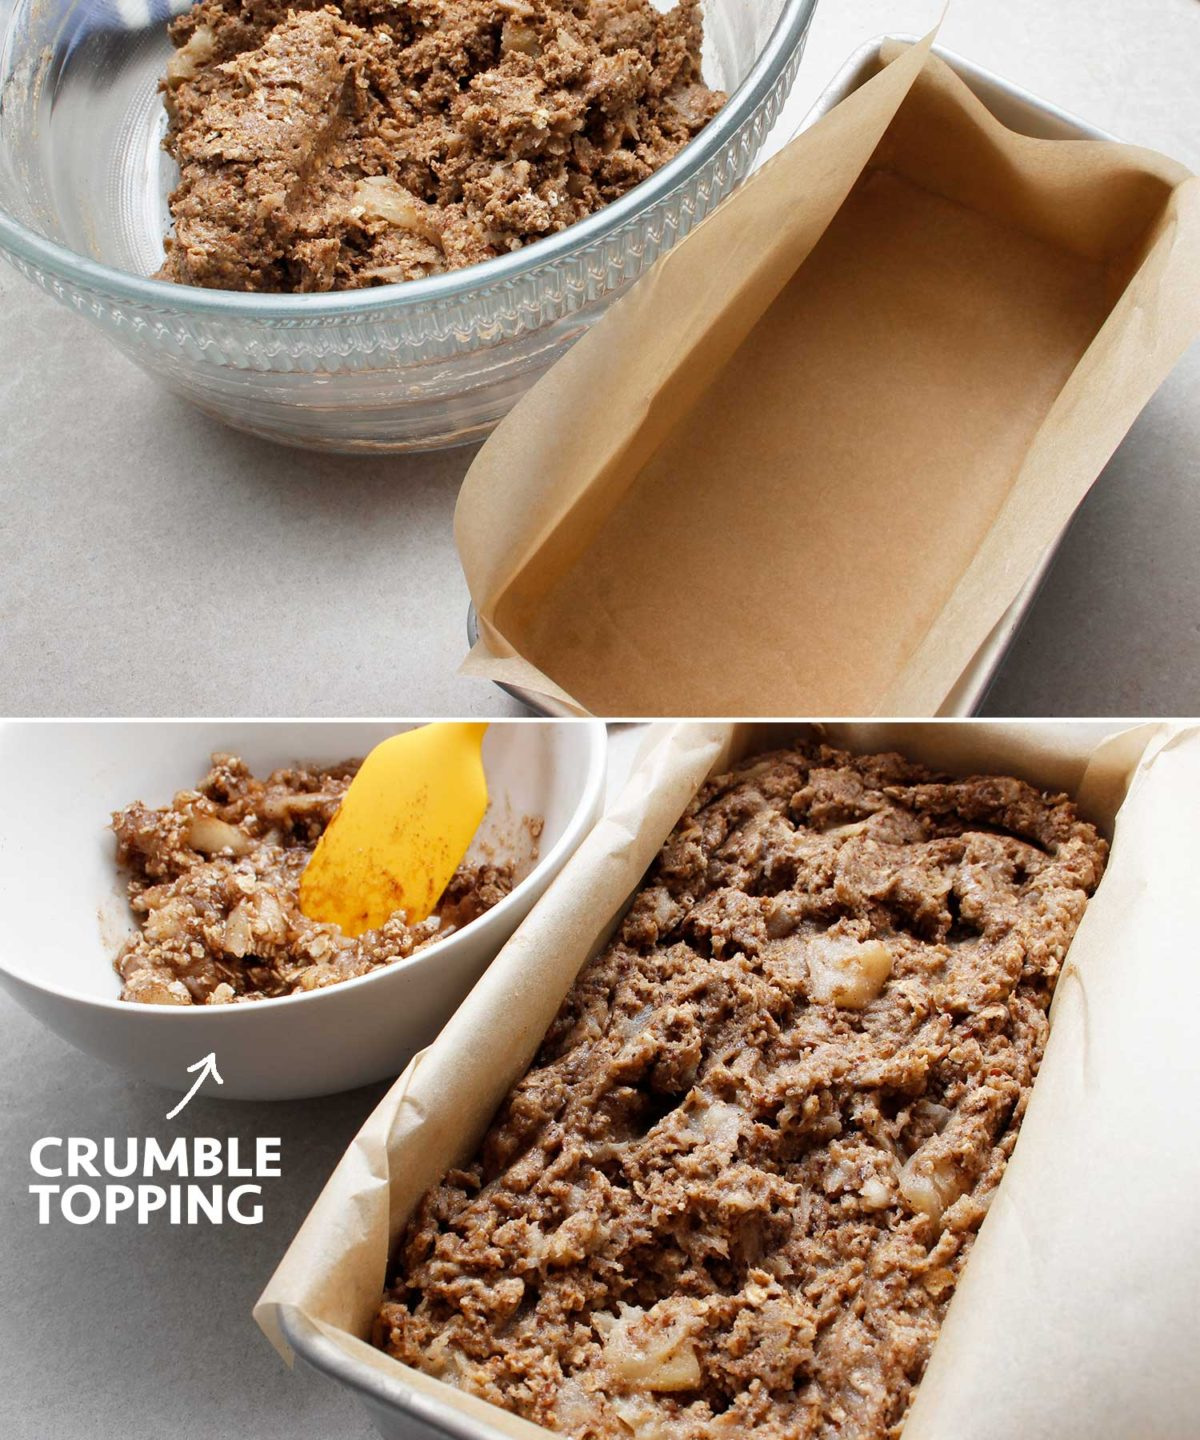 The apple crisp bread mixture transferred to parchment-lined bread pan just before the addition of the apple crisp crumble topping.